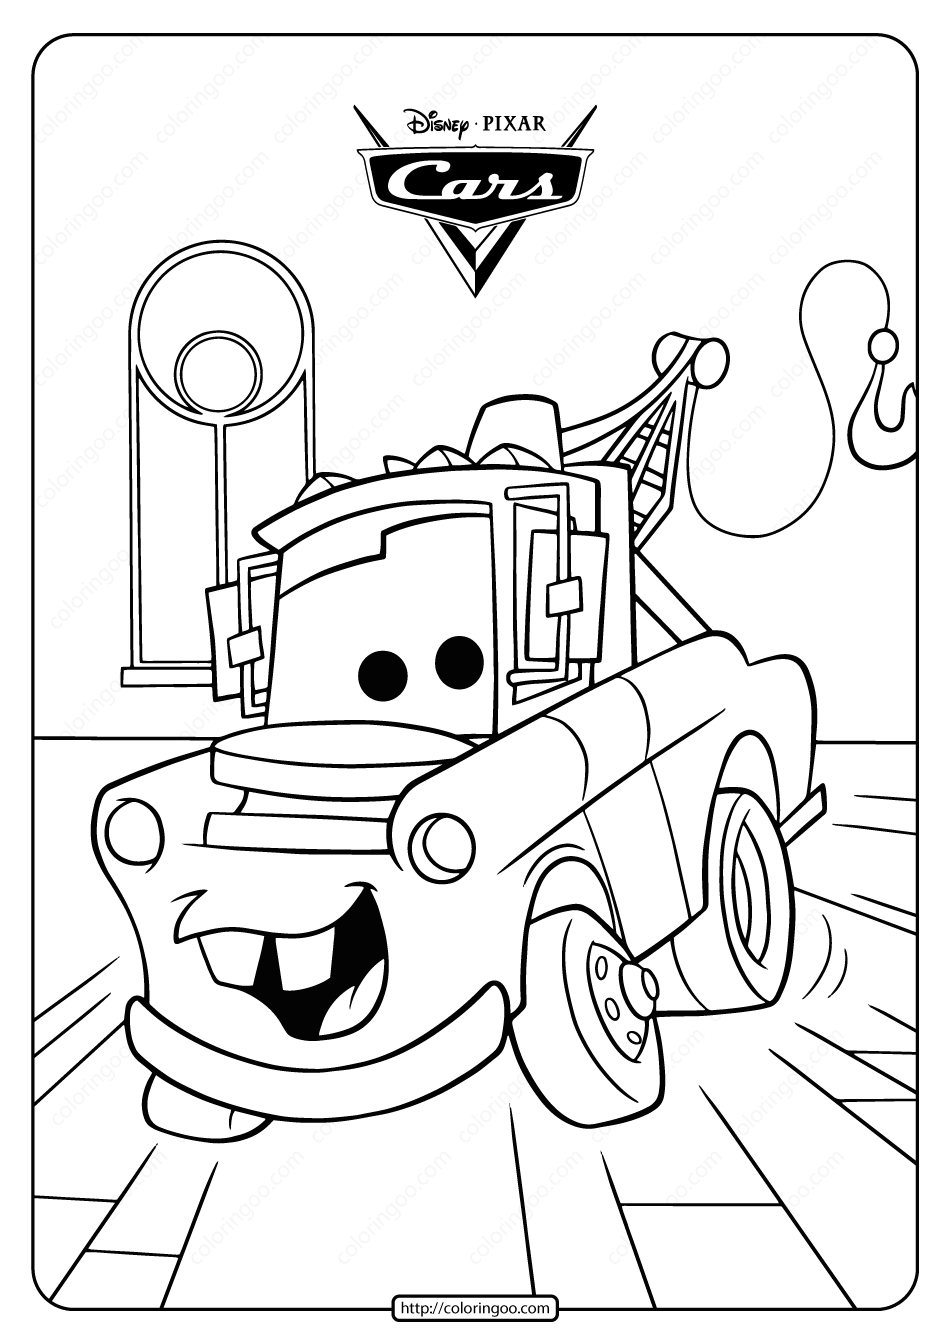 Forky Toy Story Coloring Page Disney Pixar Printable Frees Pages ... | 1344x950